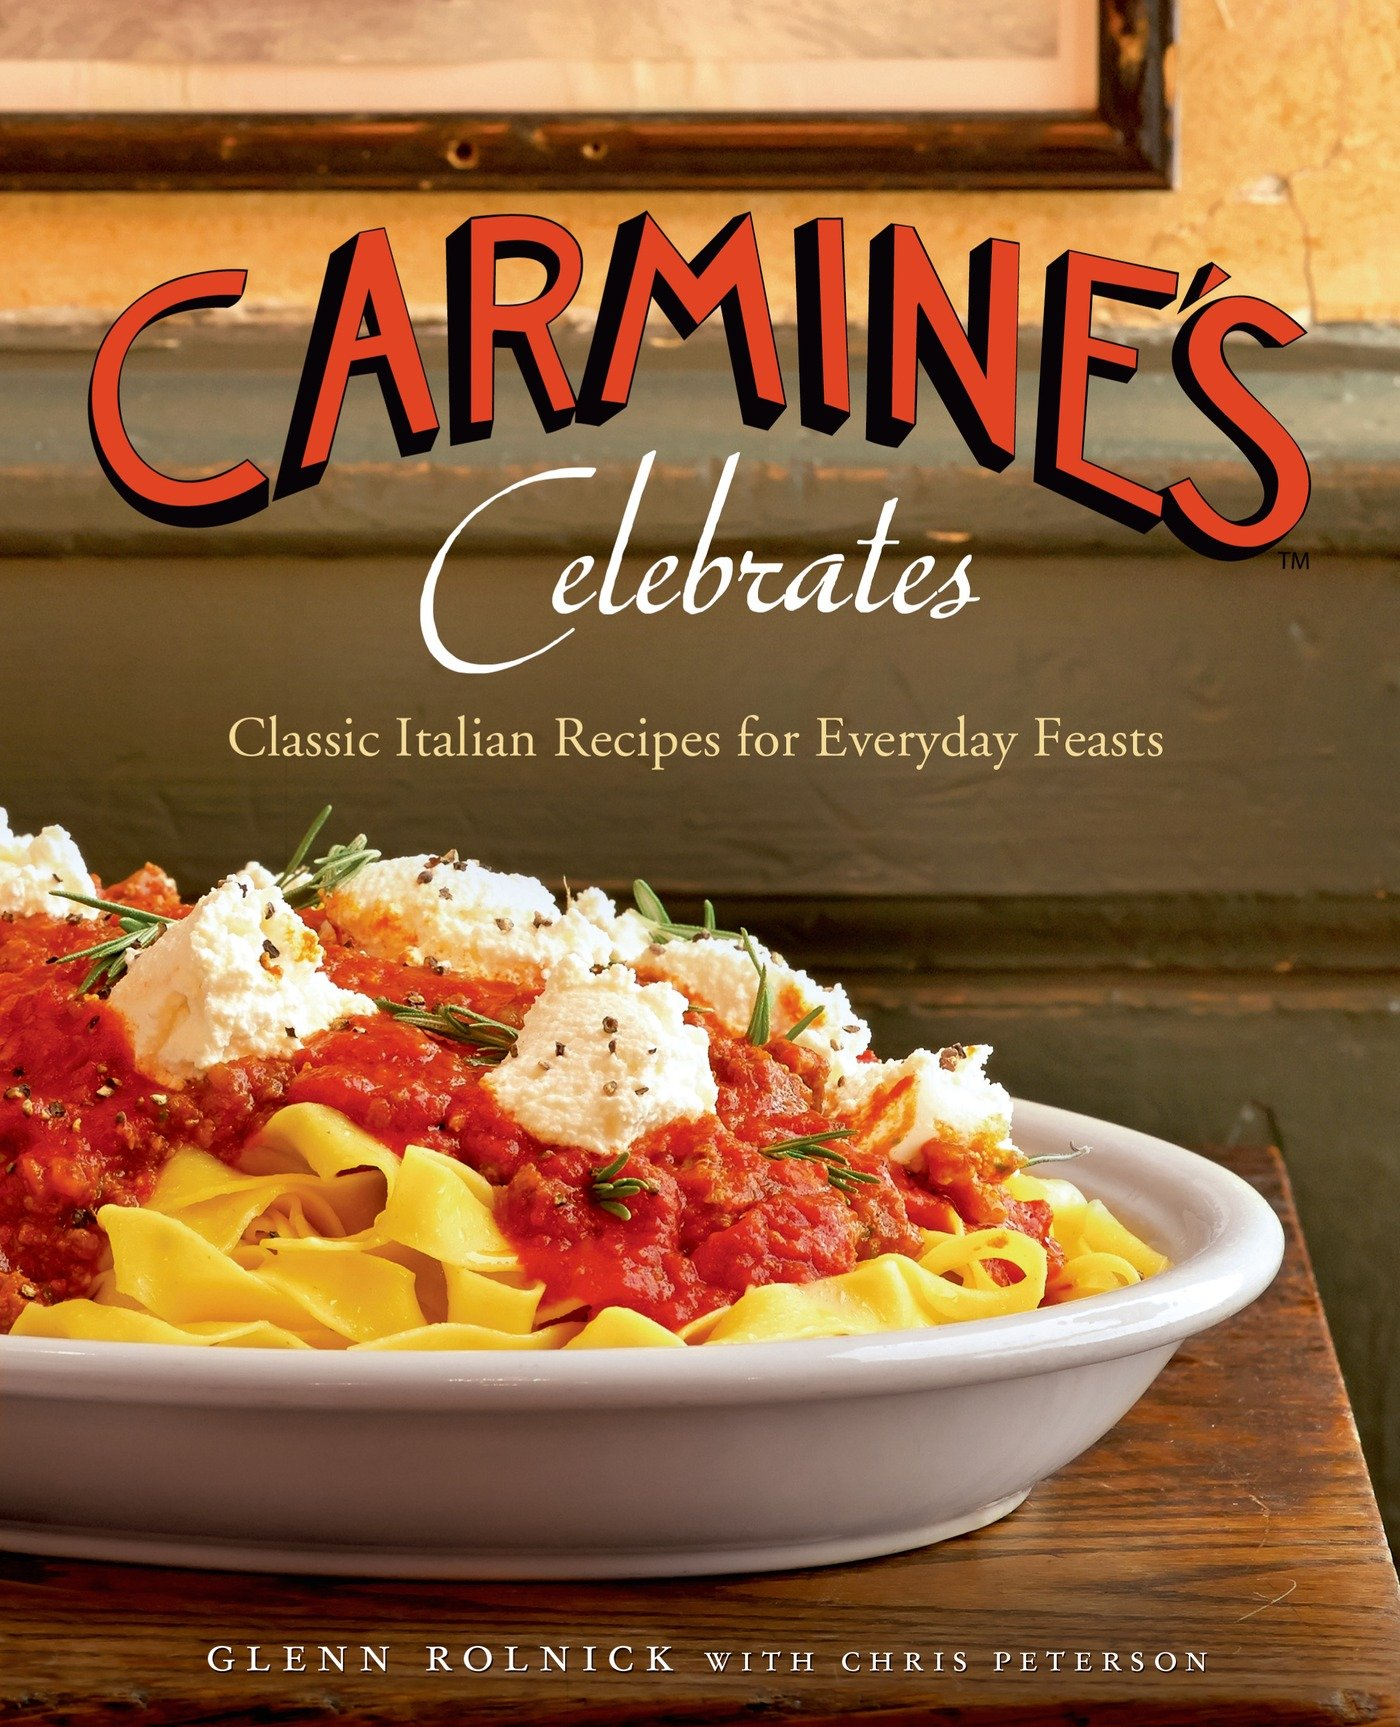 Gifts for the cookbook lover some of my favorite cookbooks to give carmines celebrates classic italian recipes for everyday feasts by glenn rolnick forumfinder Gallery